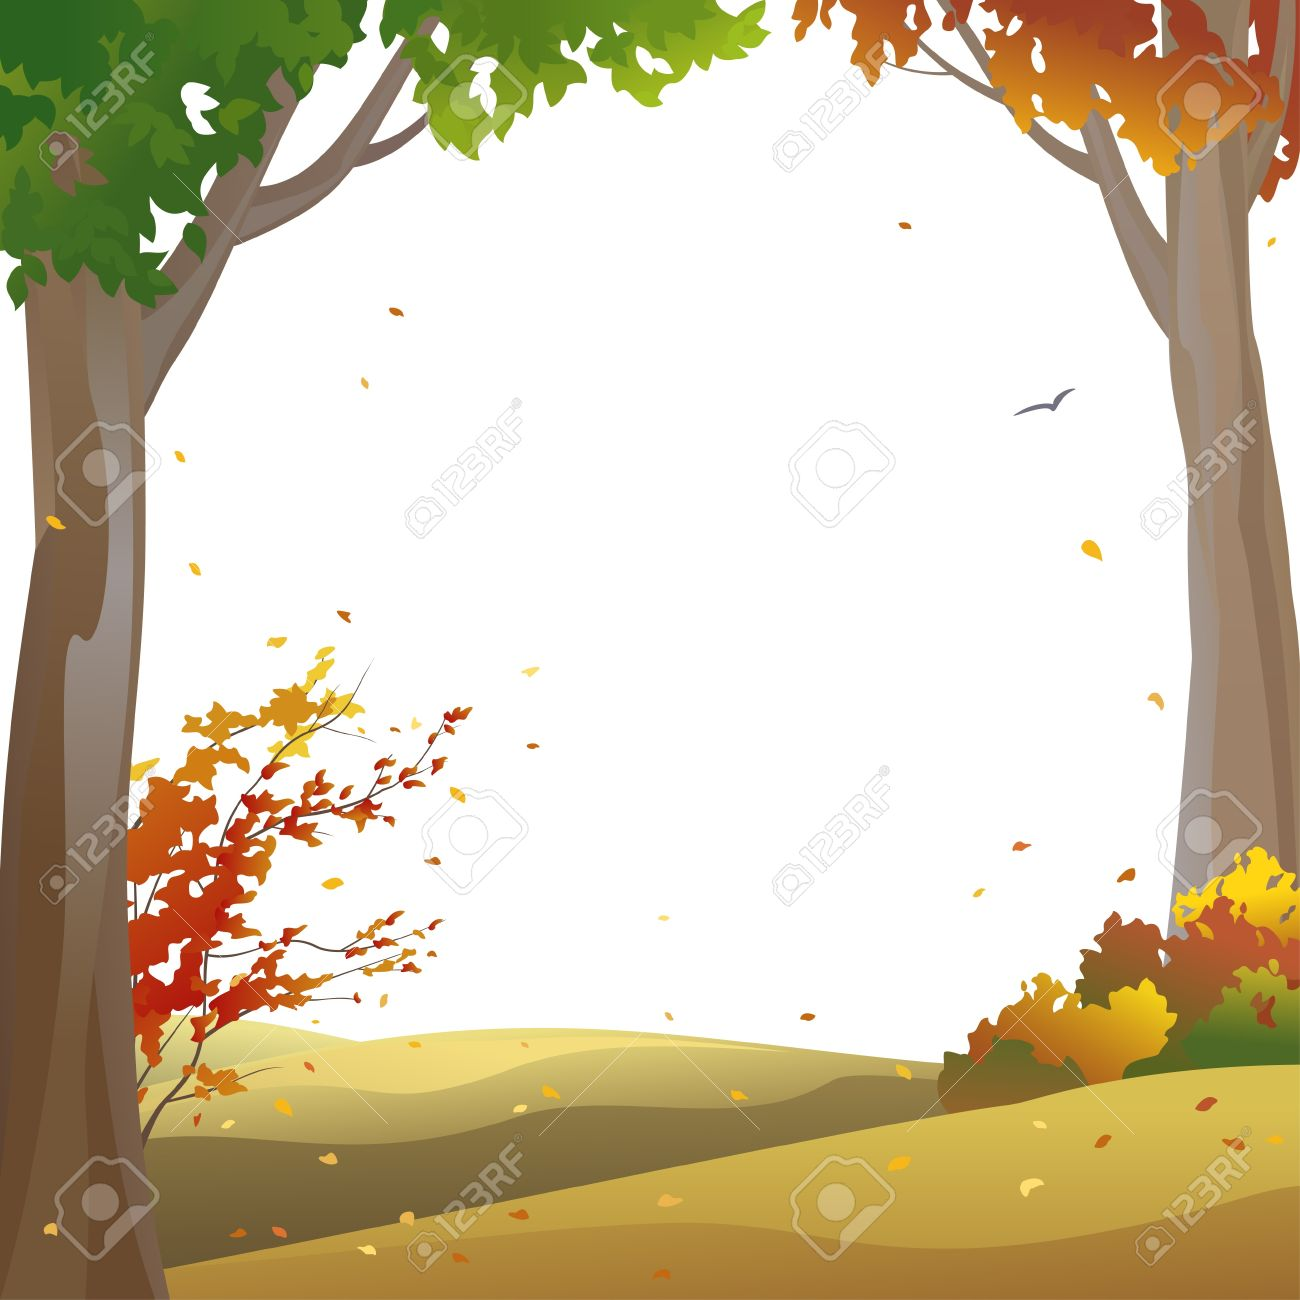 hight resolution of fall background clipart 3